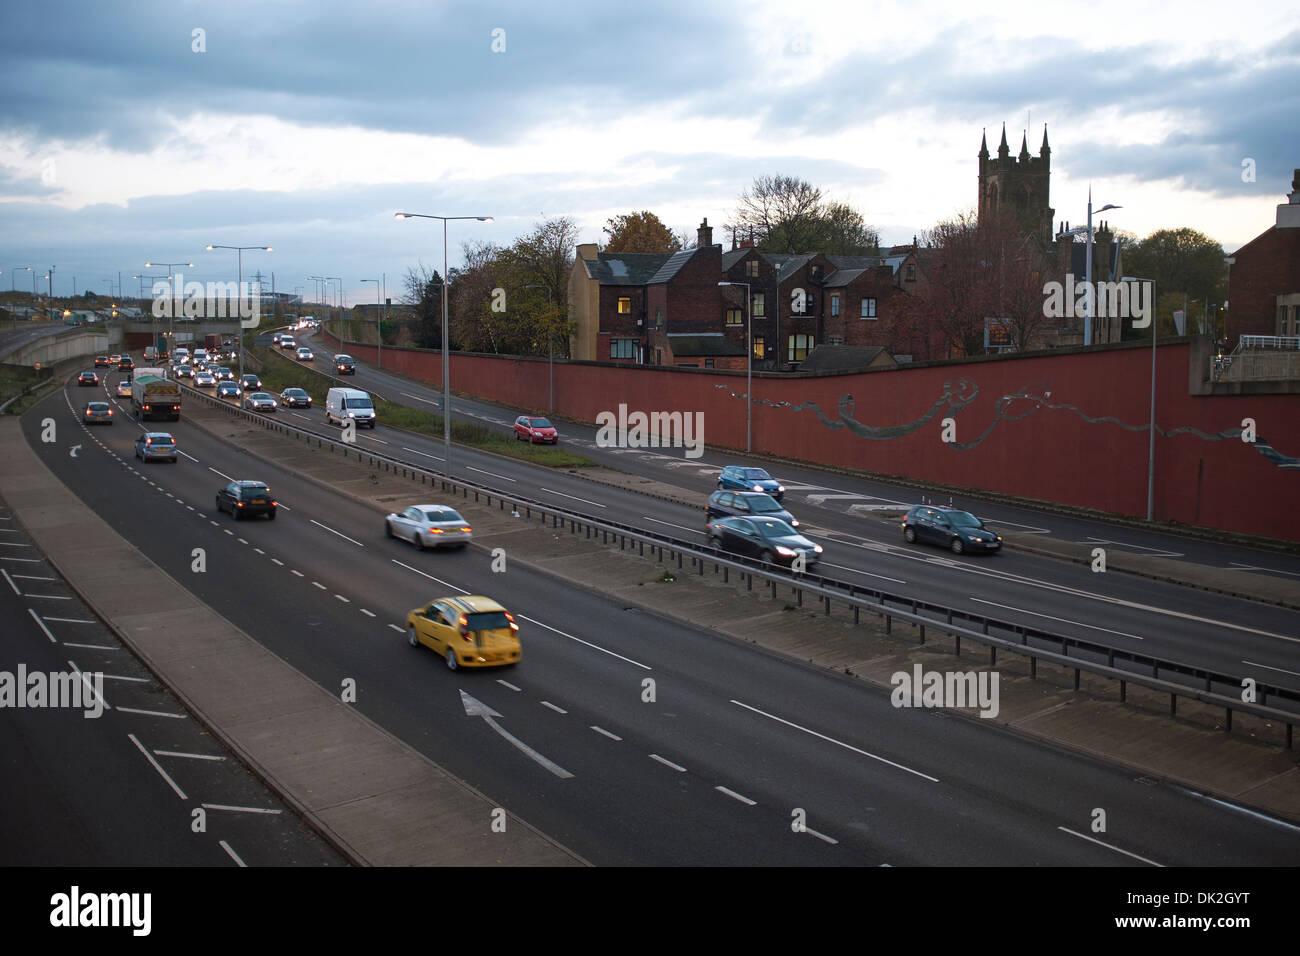 The A500 Queensway dual carriageway passing through Stoke on Trent - Stock Image